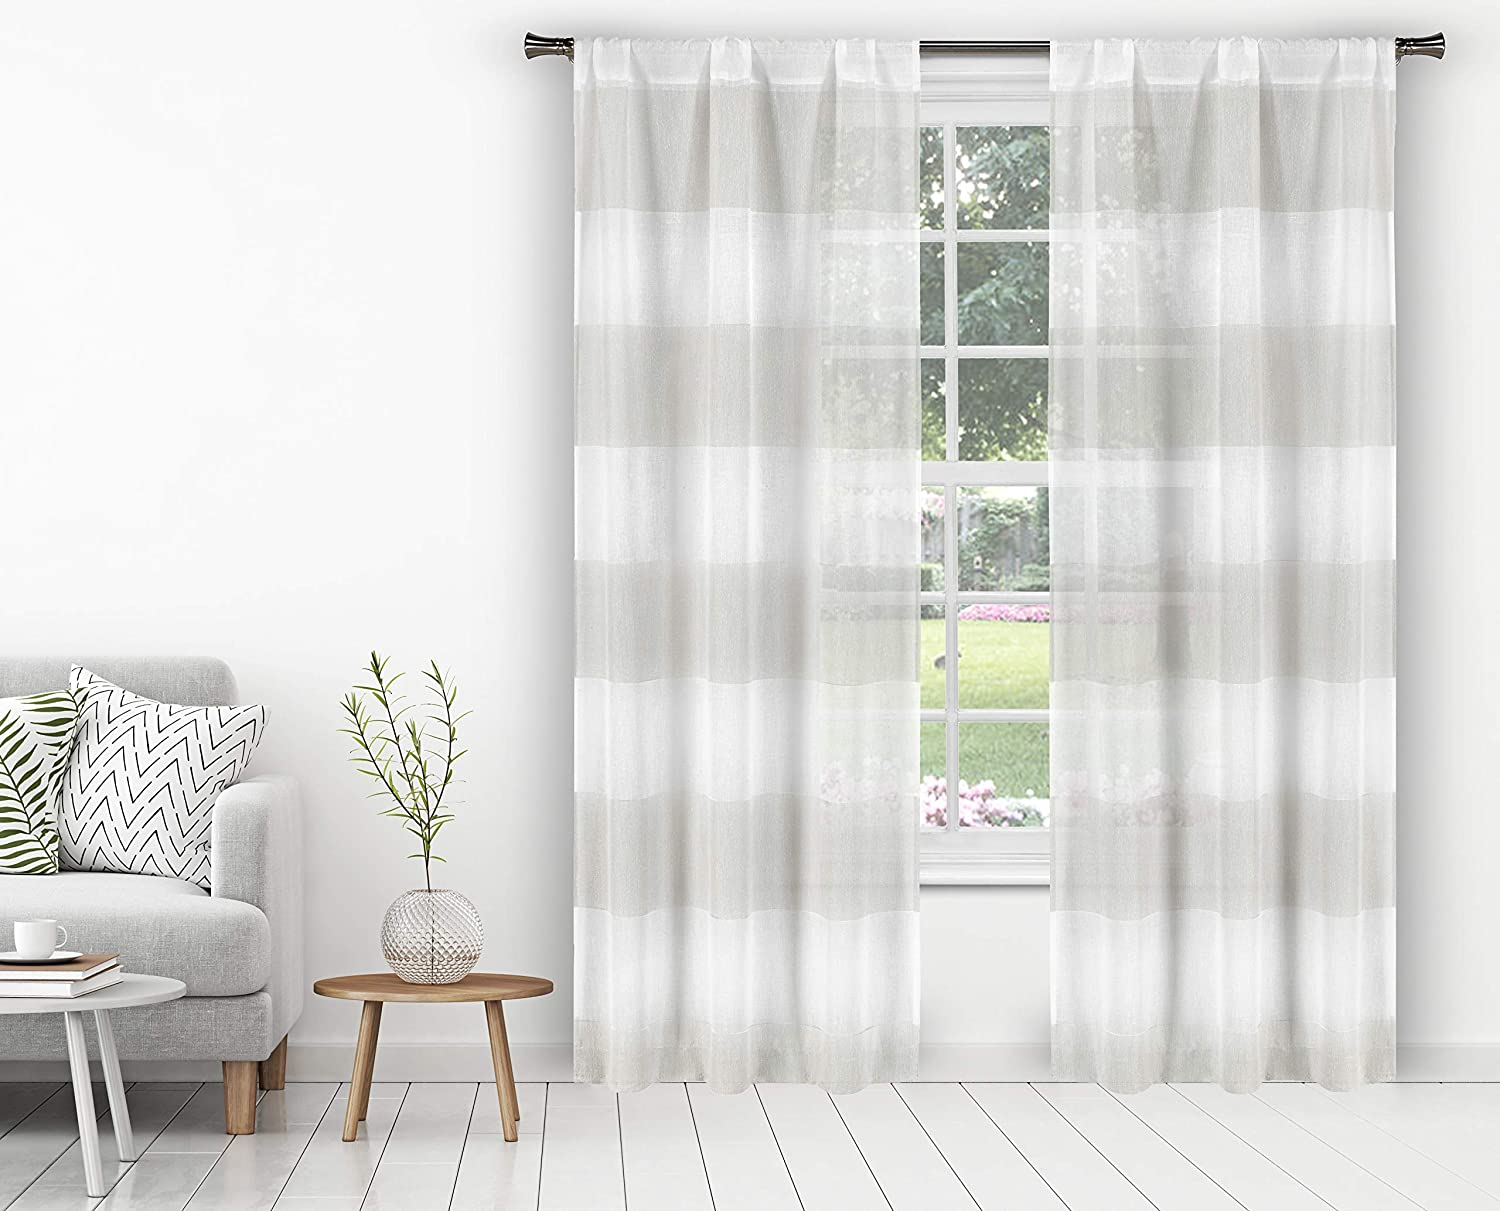 Home Maison Oakley Stripe Window Curtain, 37x84 (2 Pieces), Taupe-White